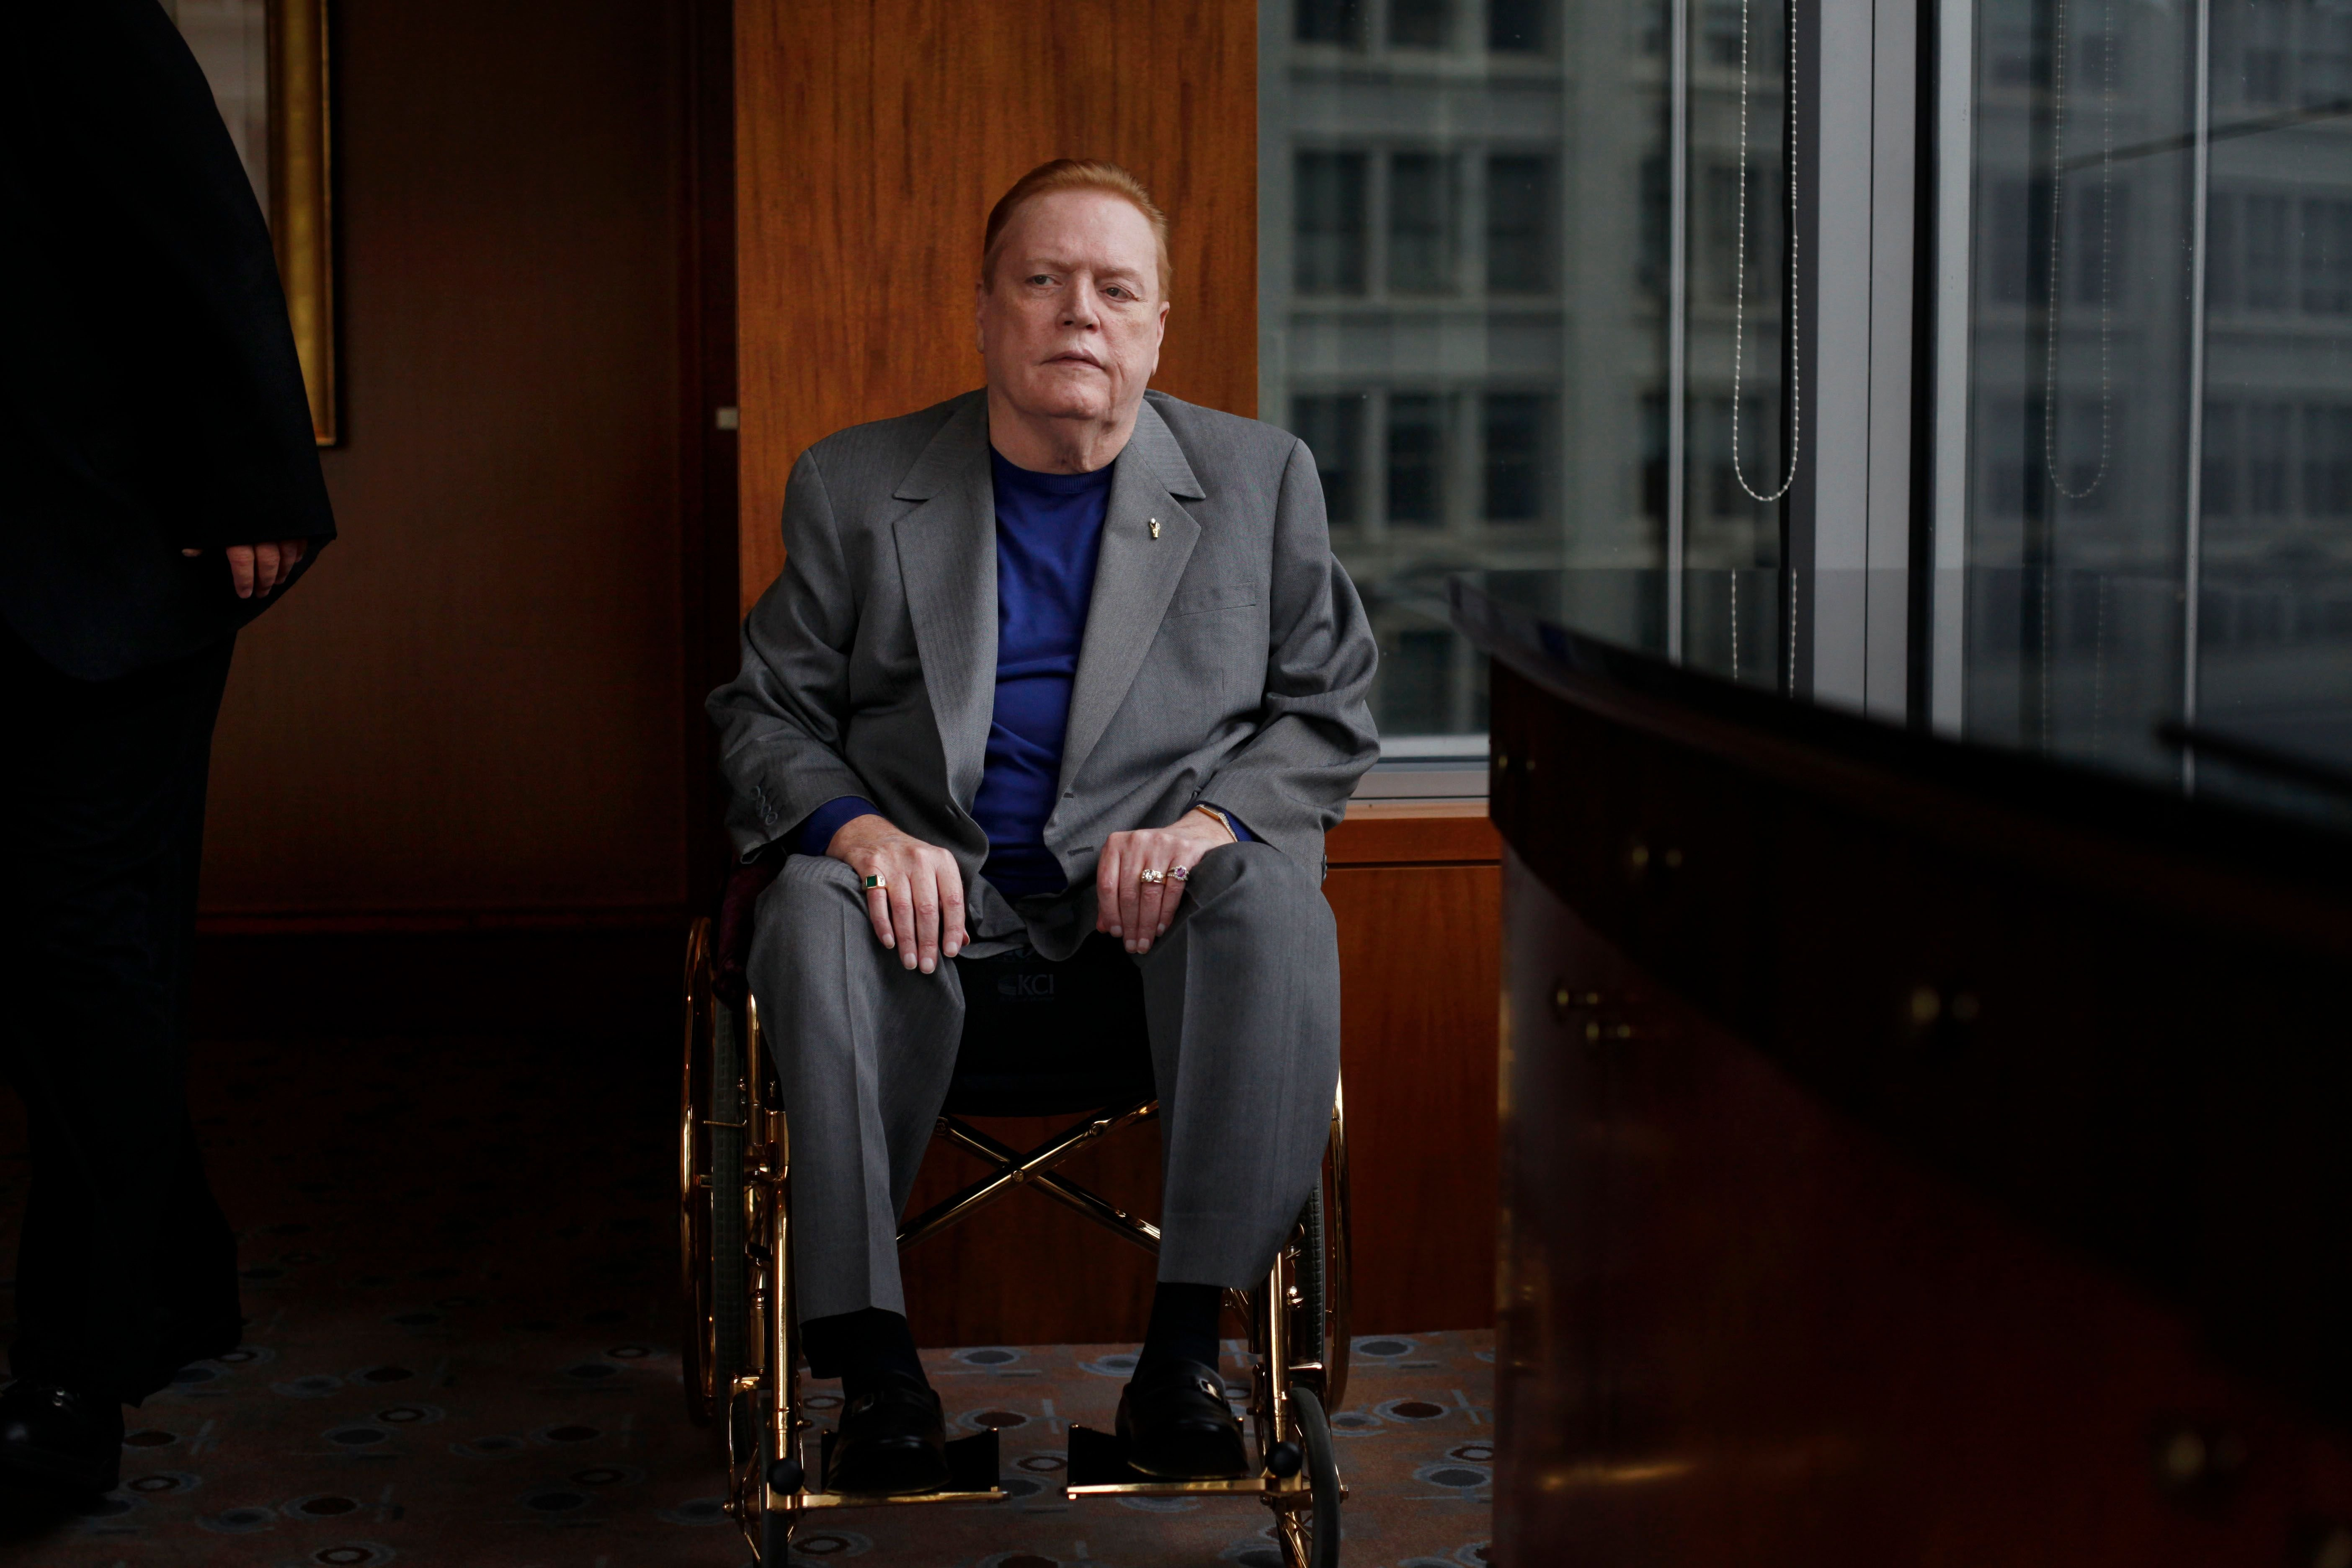 Larry Flynt sits for a portrait at the Four Seasons Hotel on Friday May 13, 2011. | Photo: Getty Images